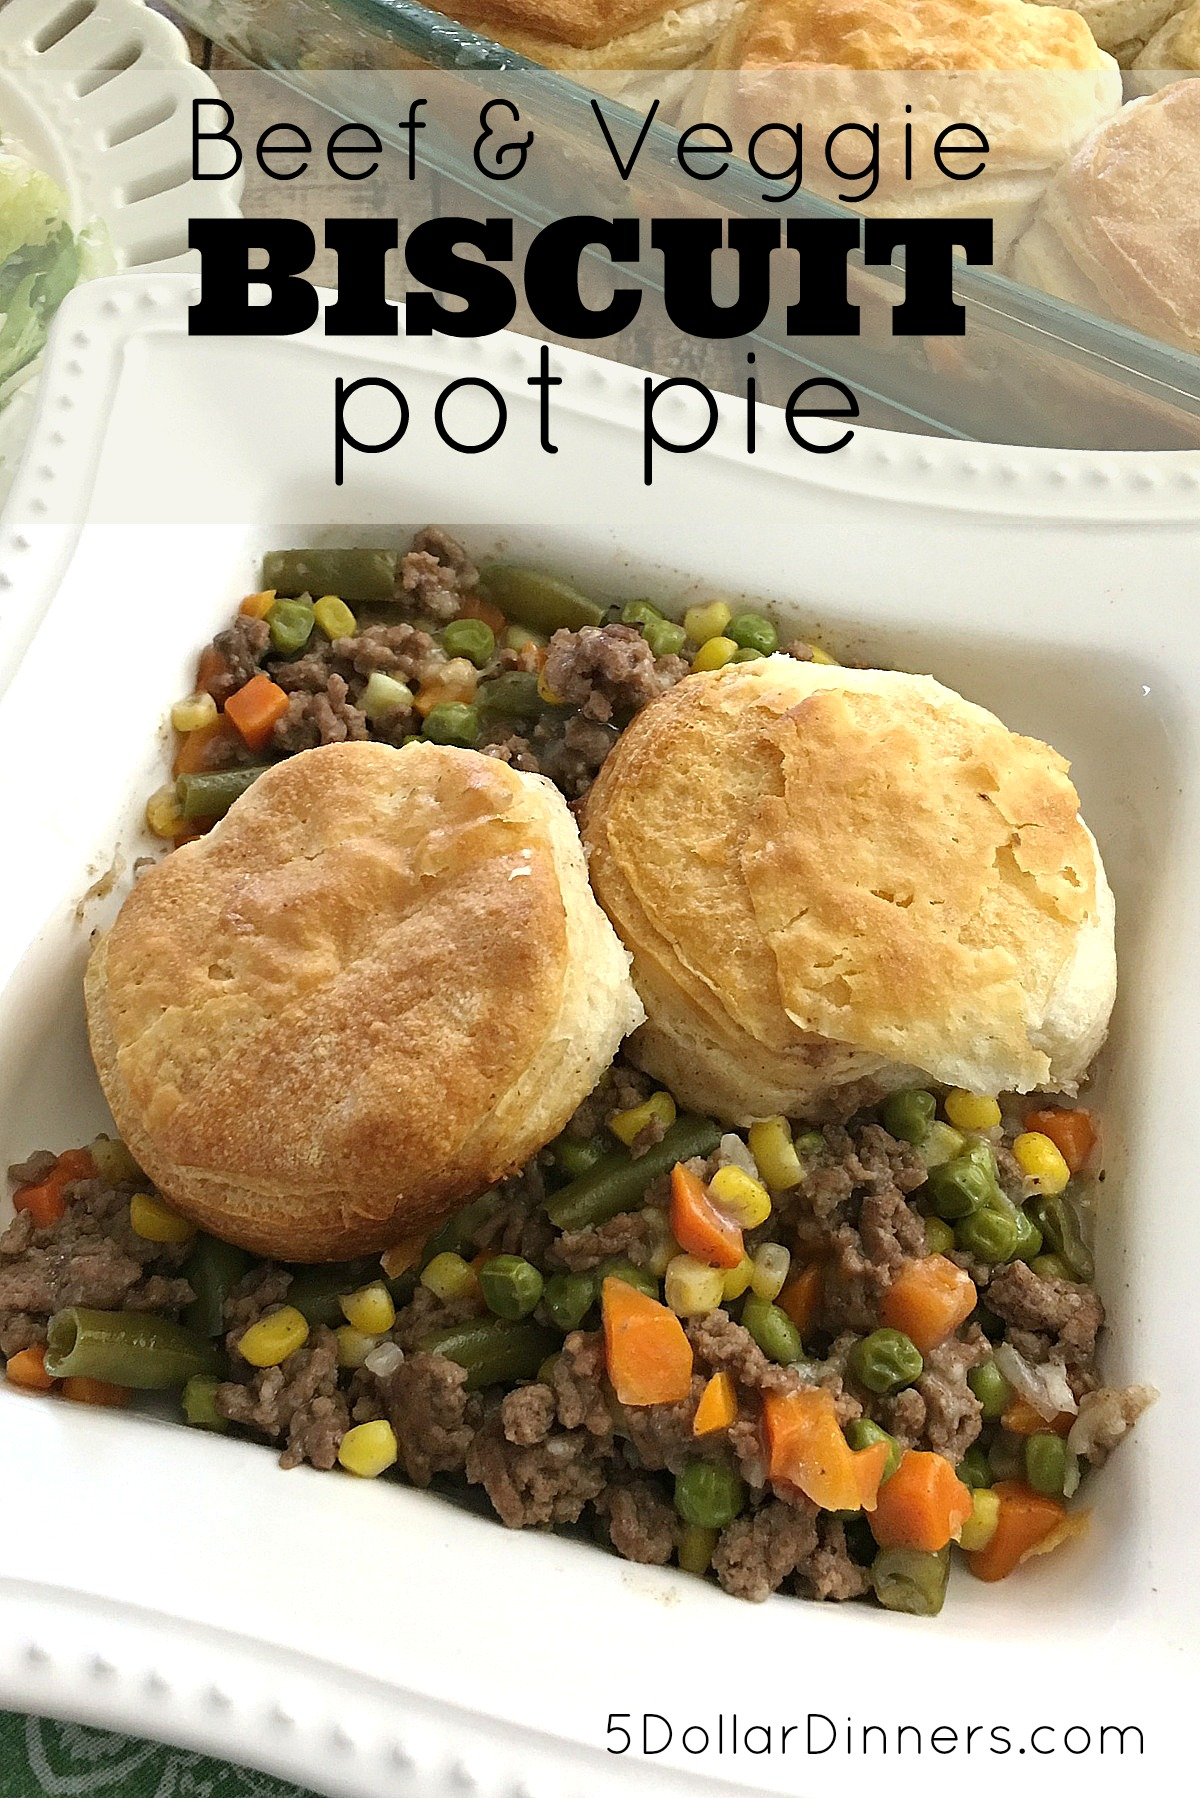 Beef & Veggie Biscuit Pot Pie_1